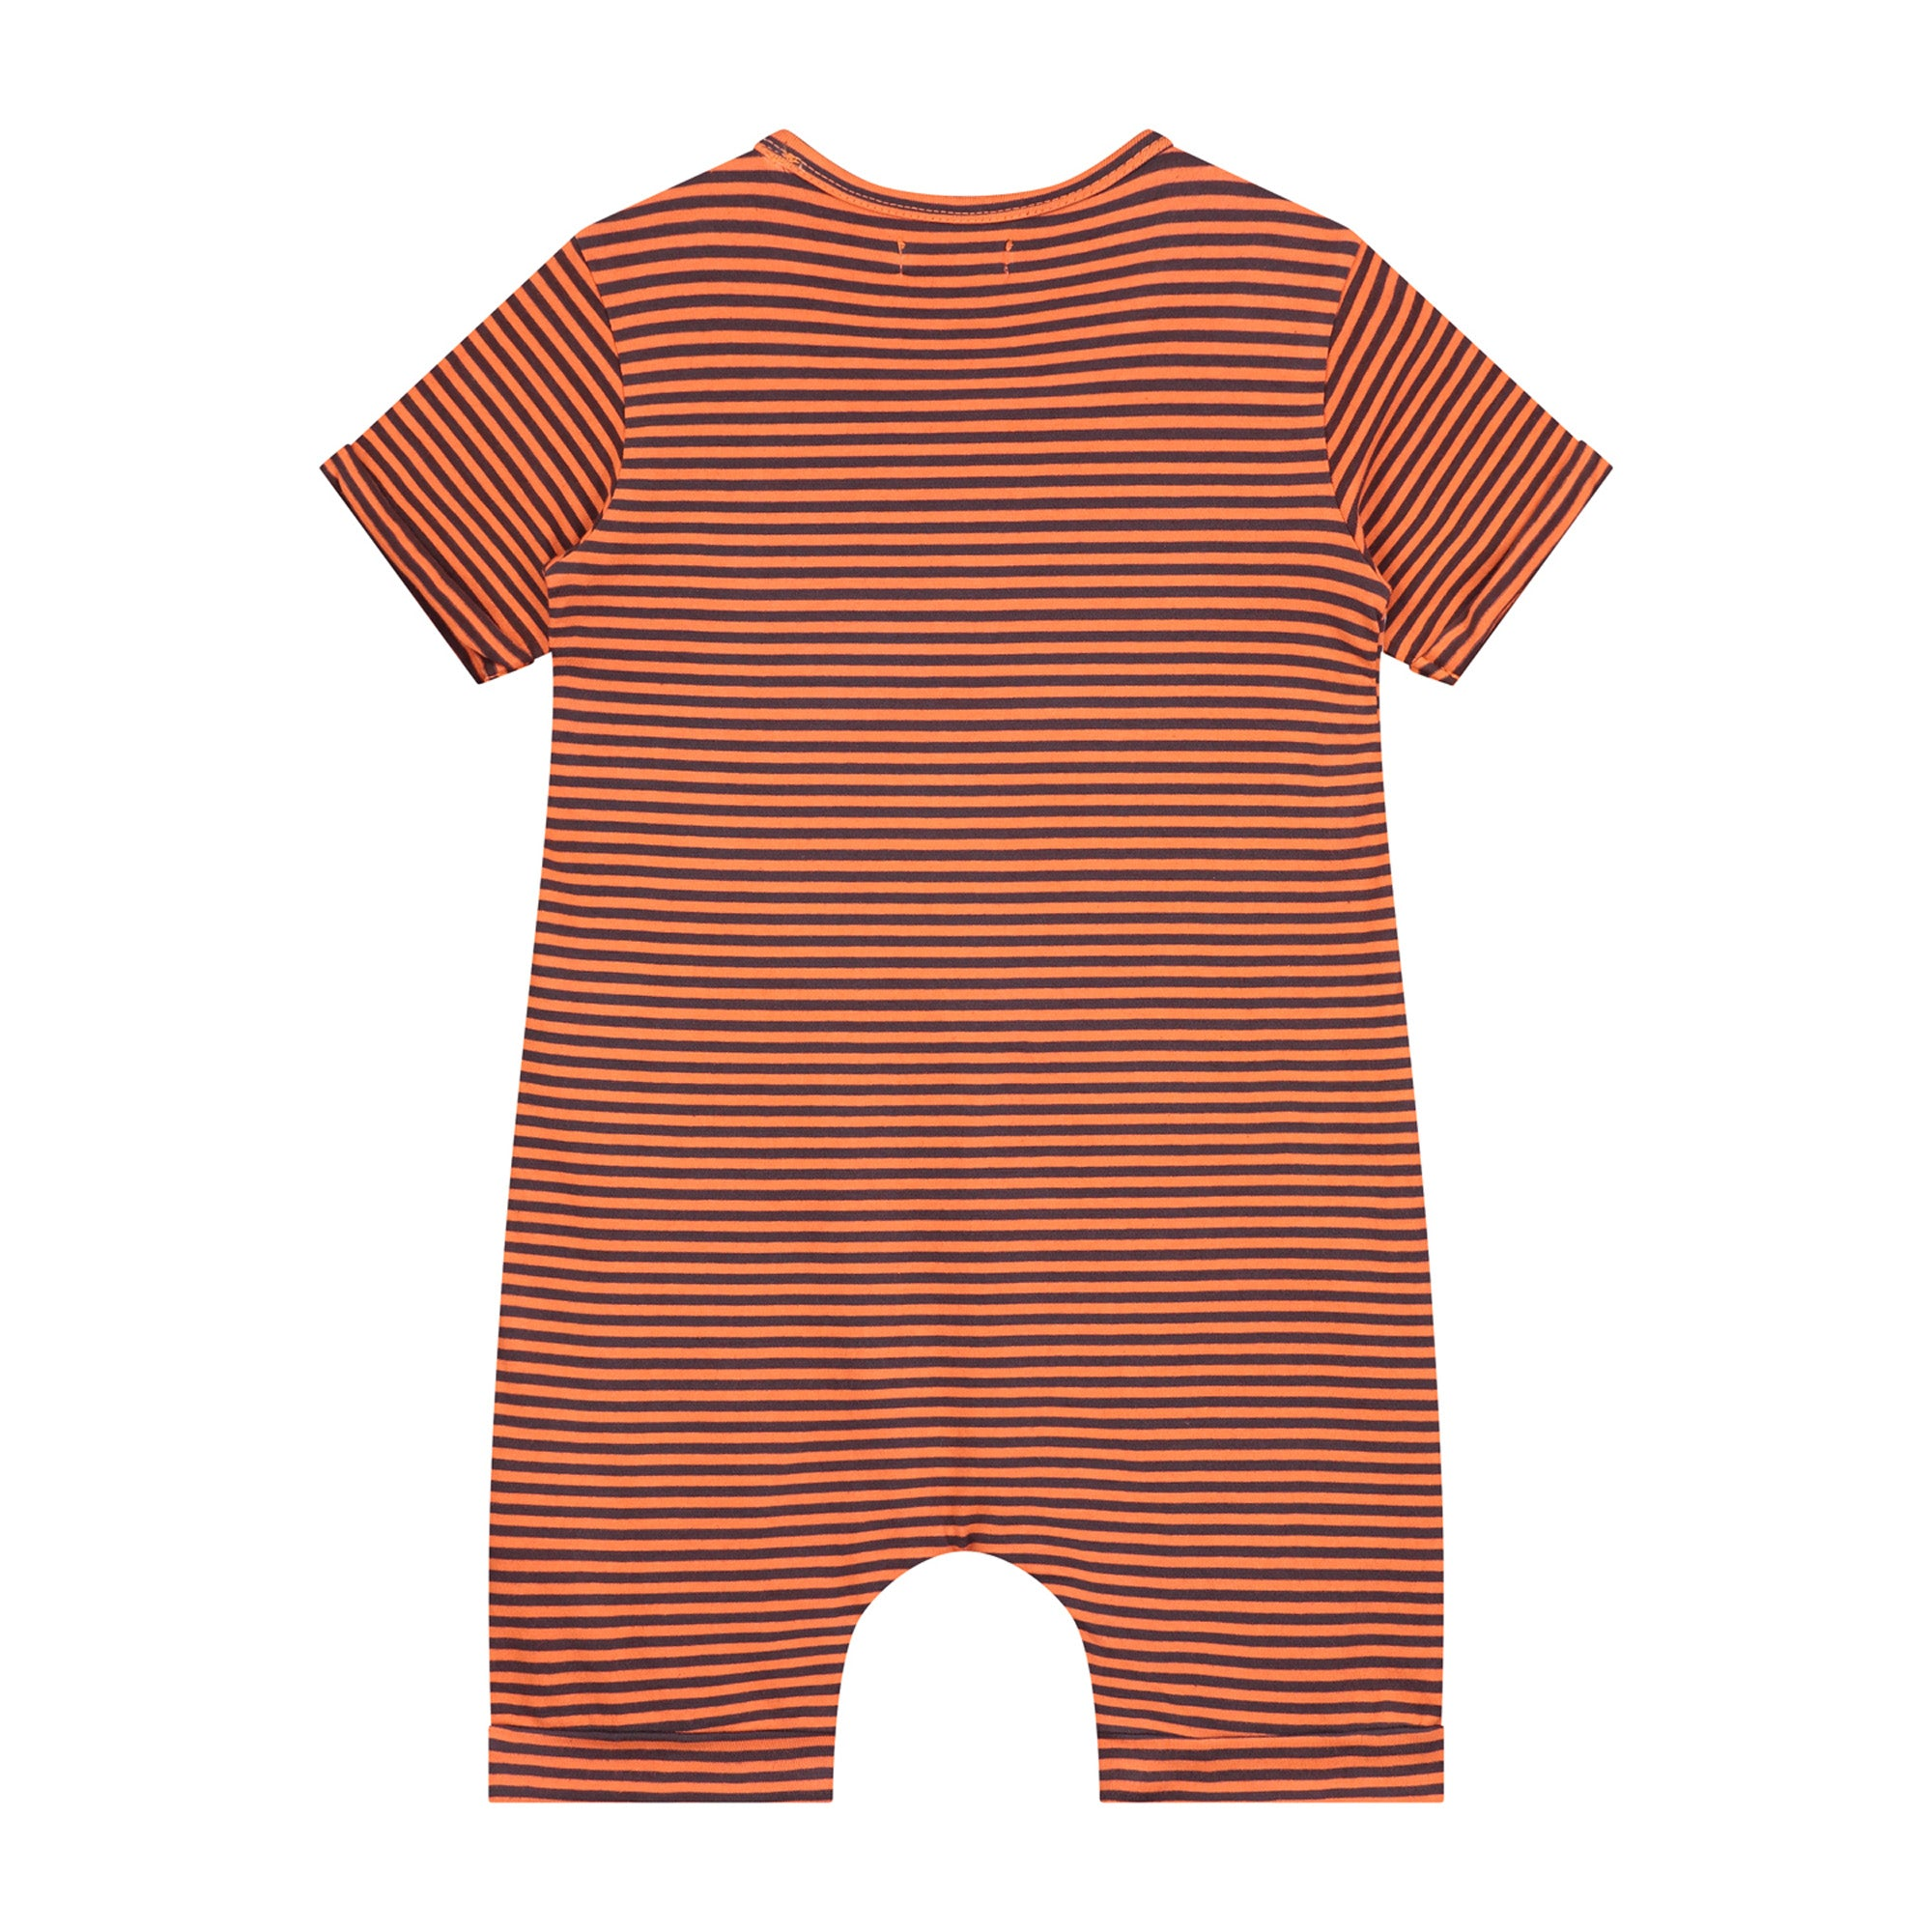 You Can Striped  Unisex  Playsuit